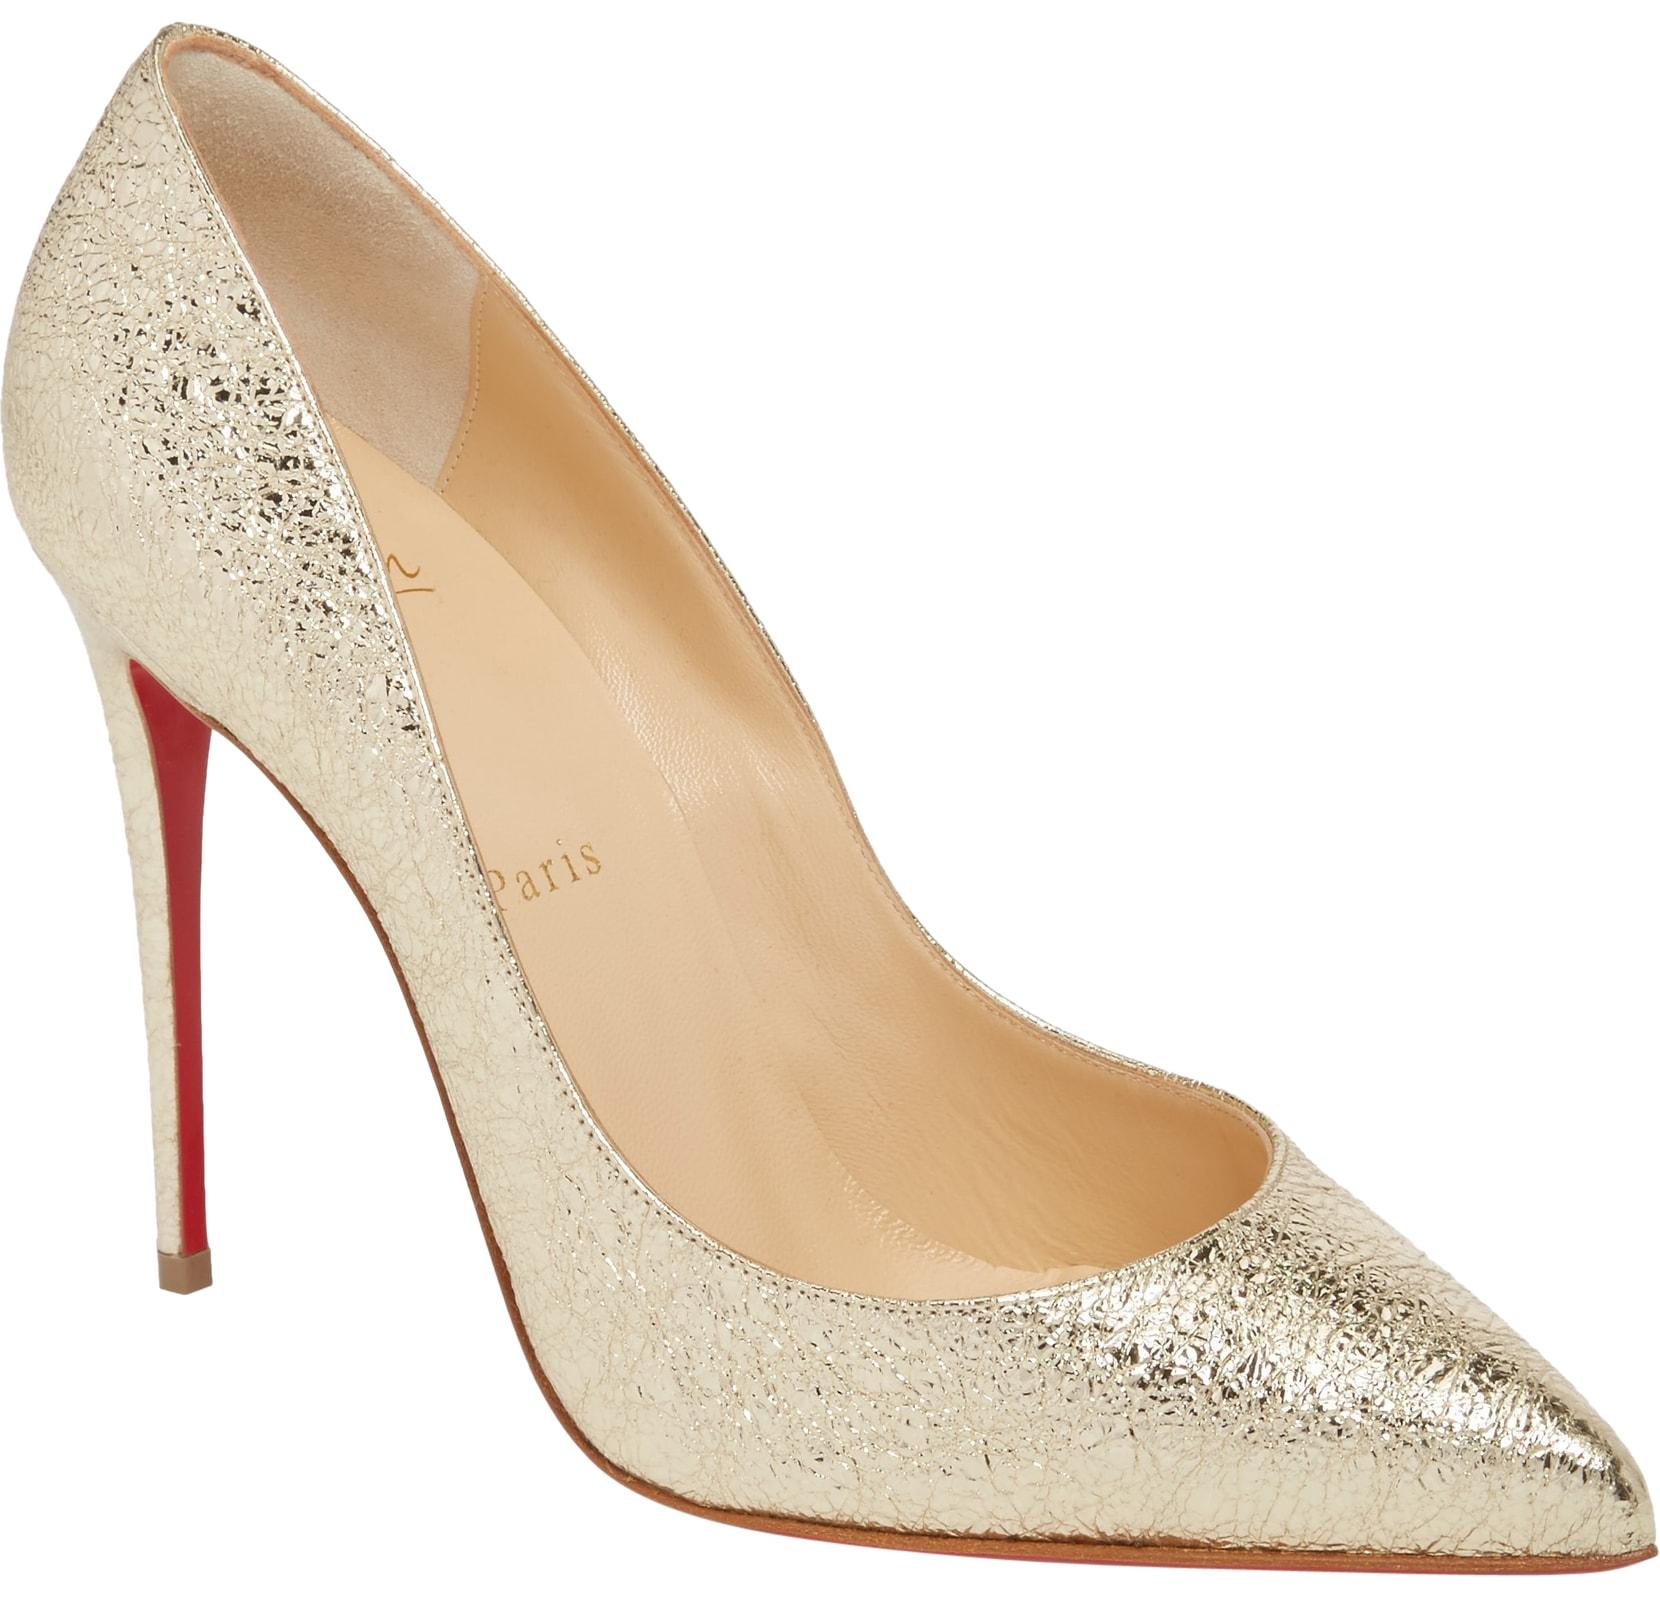 1ca5cf64d362 Christian Louboutin Gold Classic Pigalle Follies Platine Platine Platine  100mm Metallic Leather Point-toe Pumps. Dolce Gabbana Black Ayers Nero  Sandals Size ...